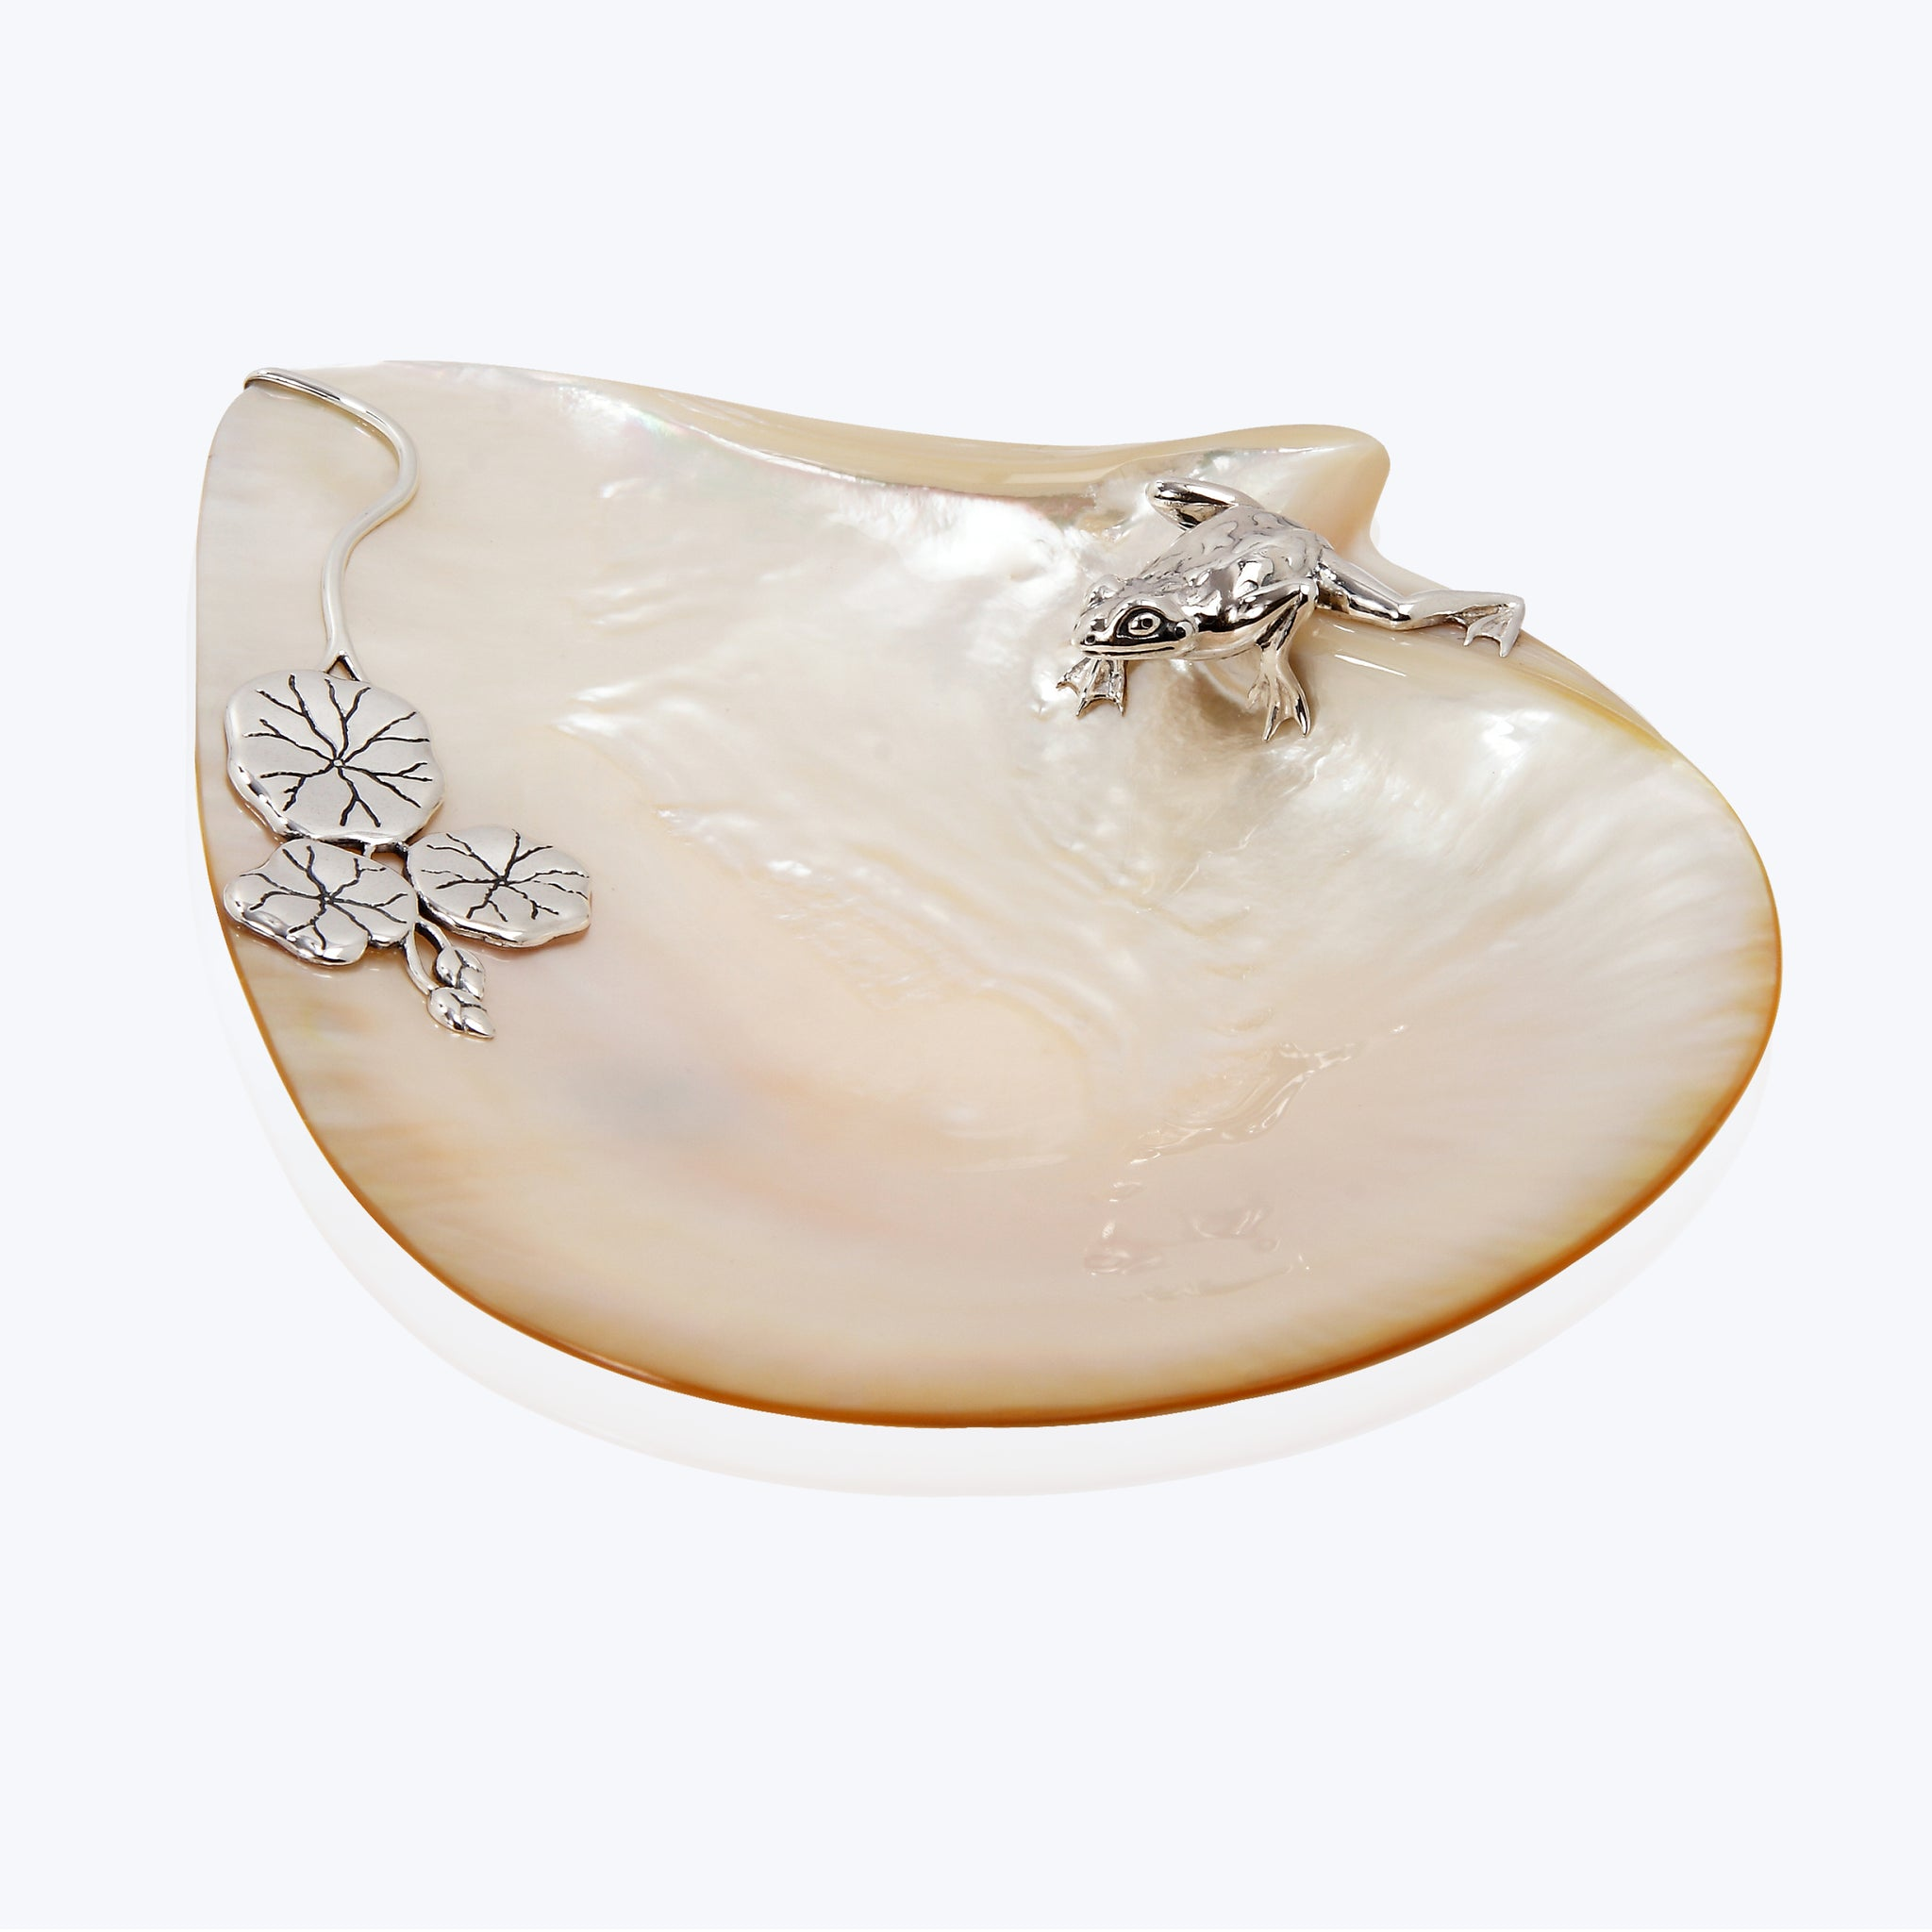 Mother of Pearl Plate with Frog and Lotus Leaves